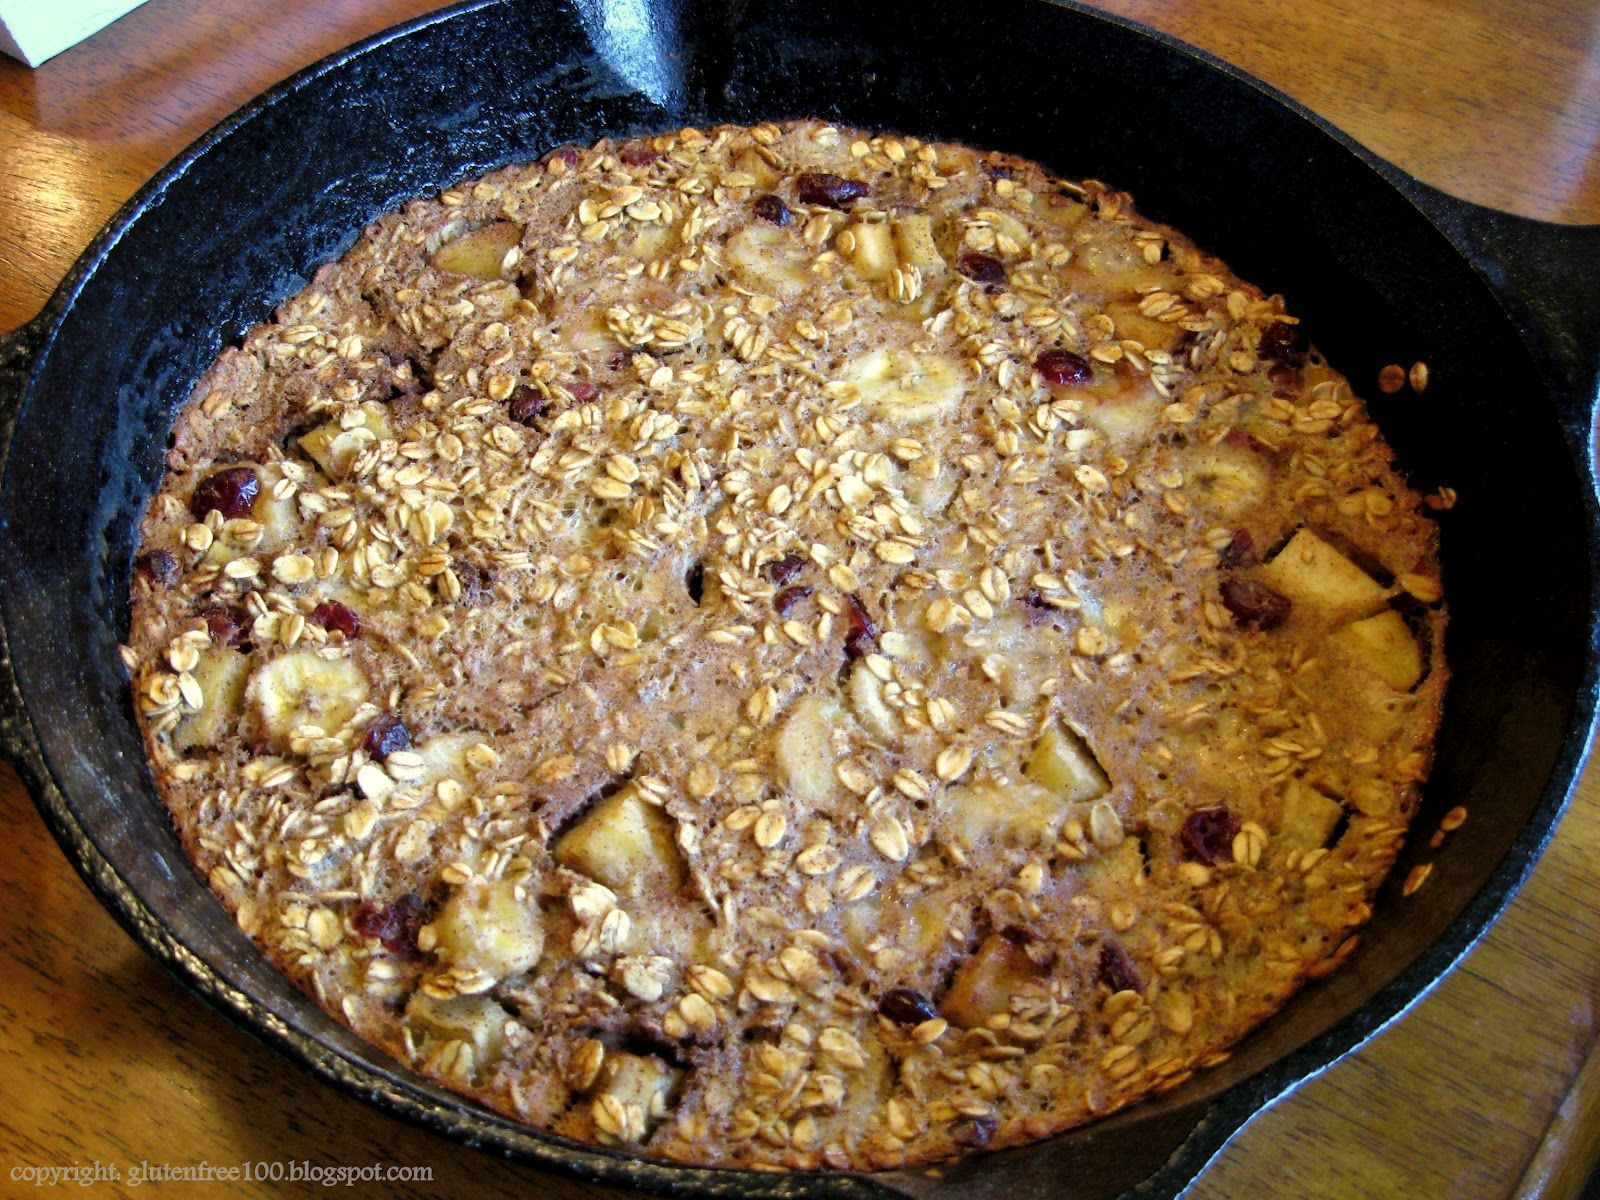 Gluten Free Iron Skillet Baked Oatmeal with Apples & Bananas Recipe